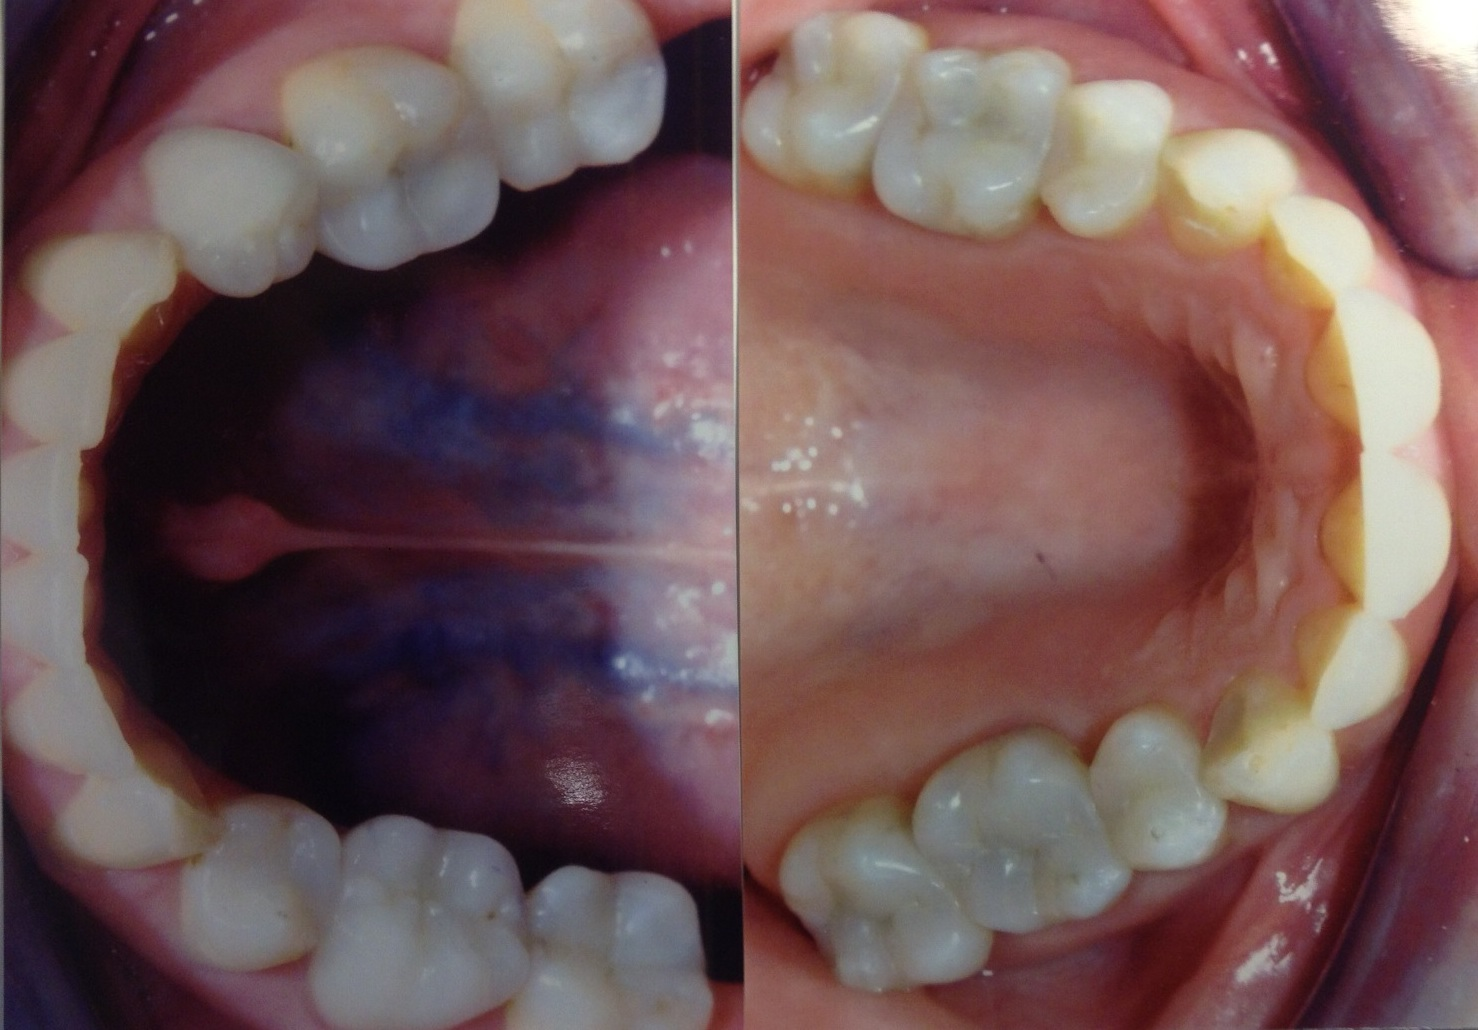 After:  Same patient after we replaced the old fillings with composite fillings.